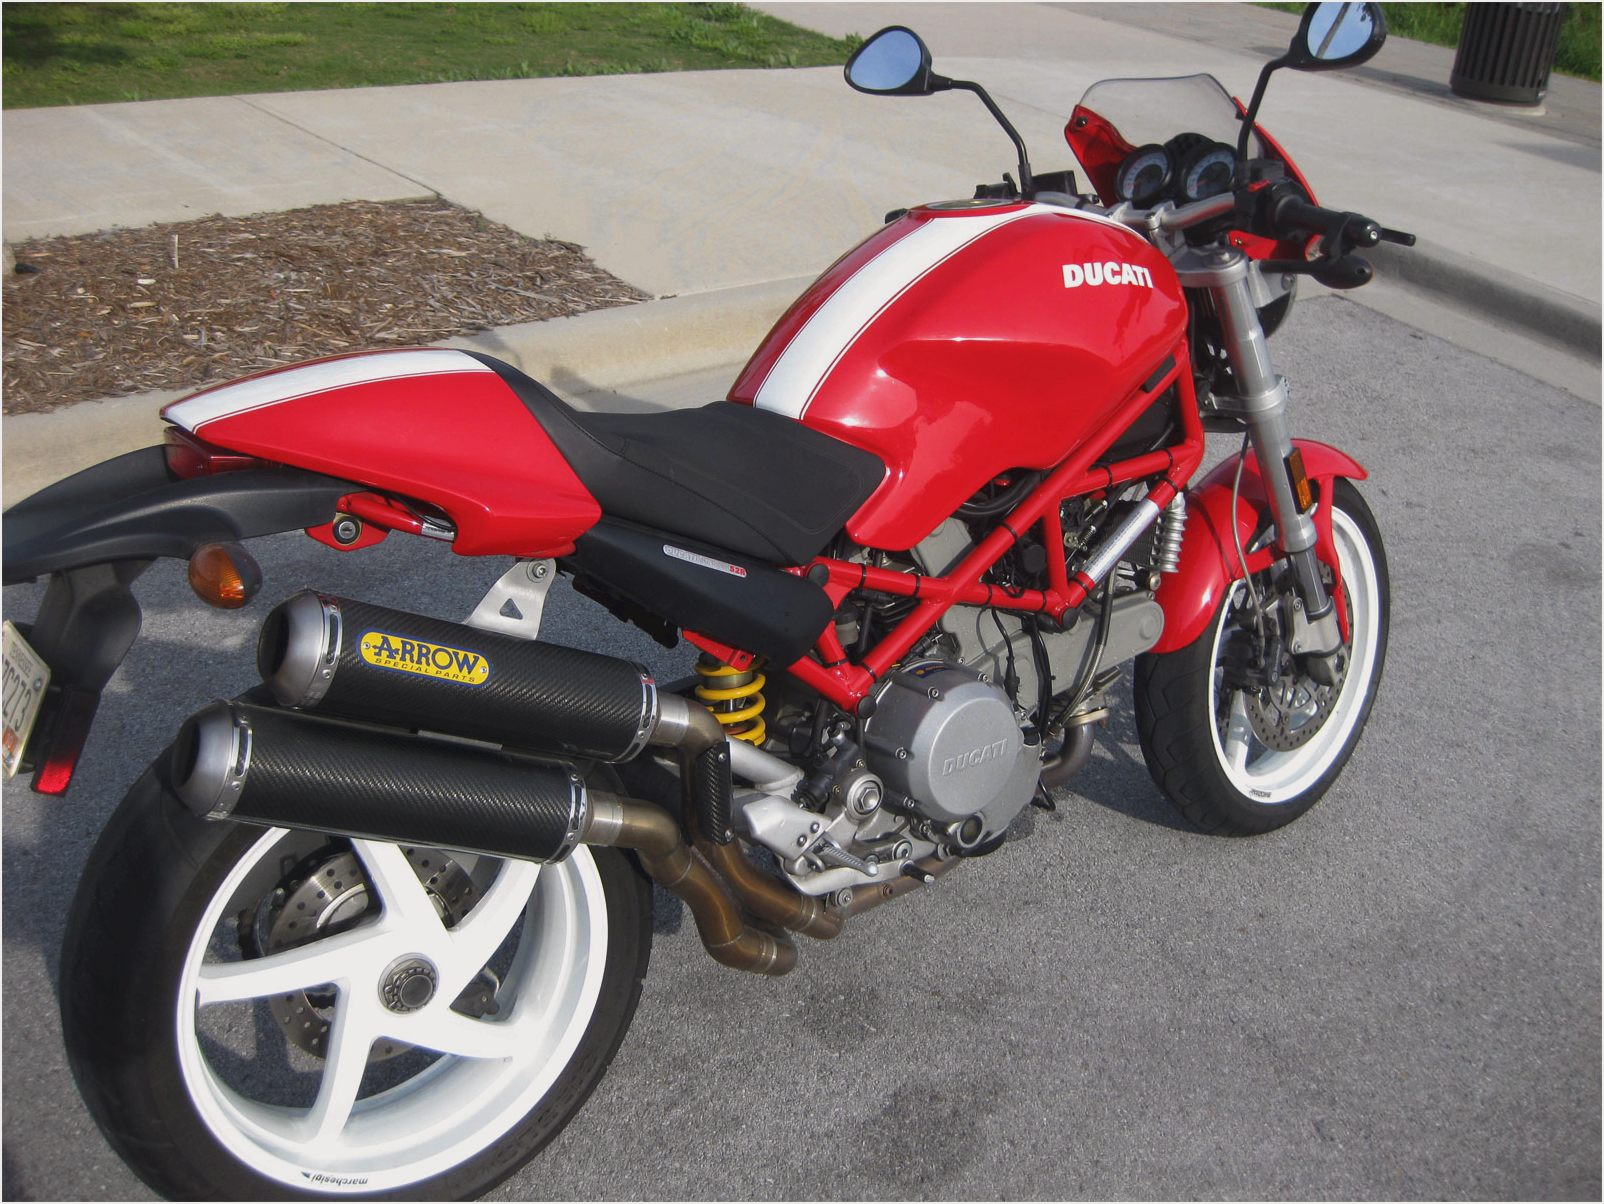 2004 Ducati Monster S2r 800 Pics Specs And Information Wiring Diagram Wallpapers 11782